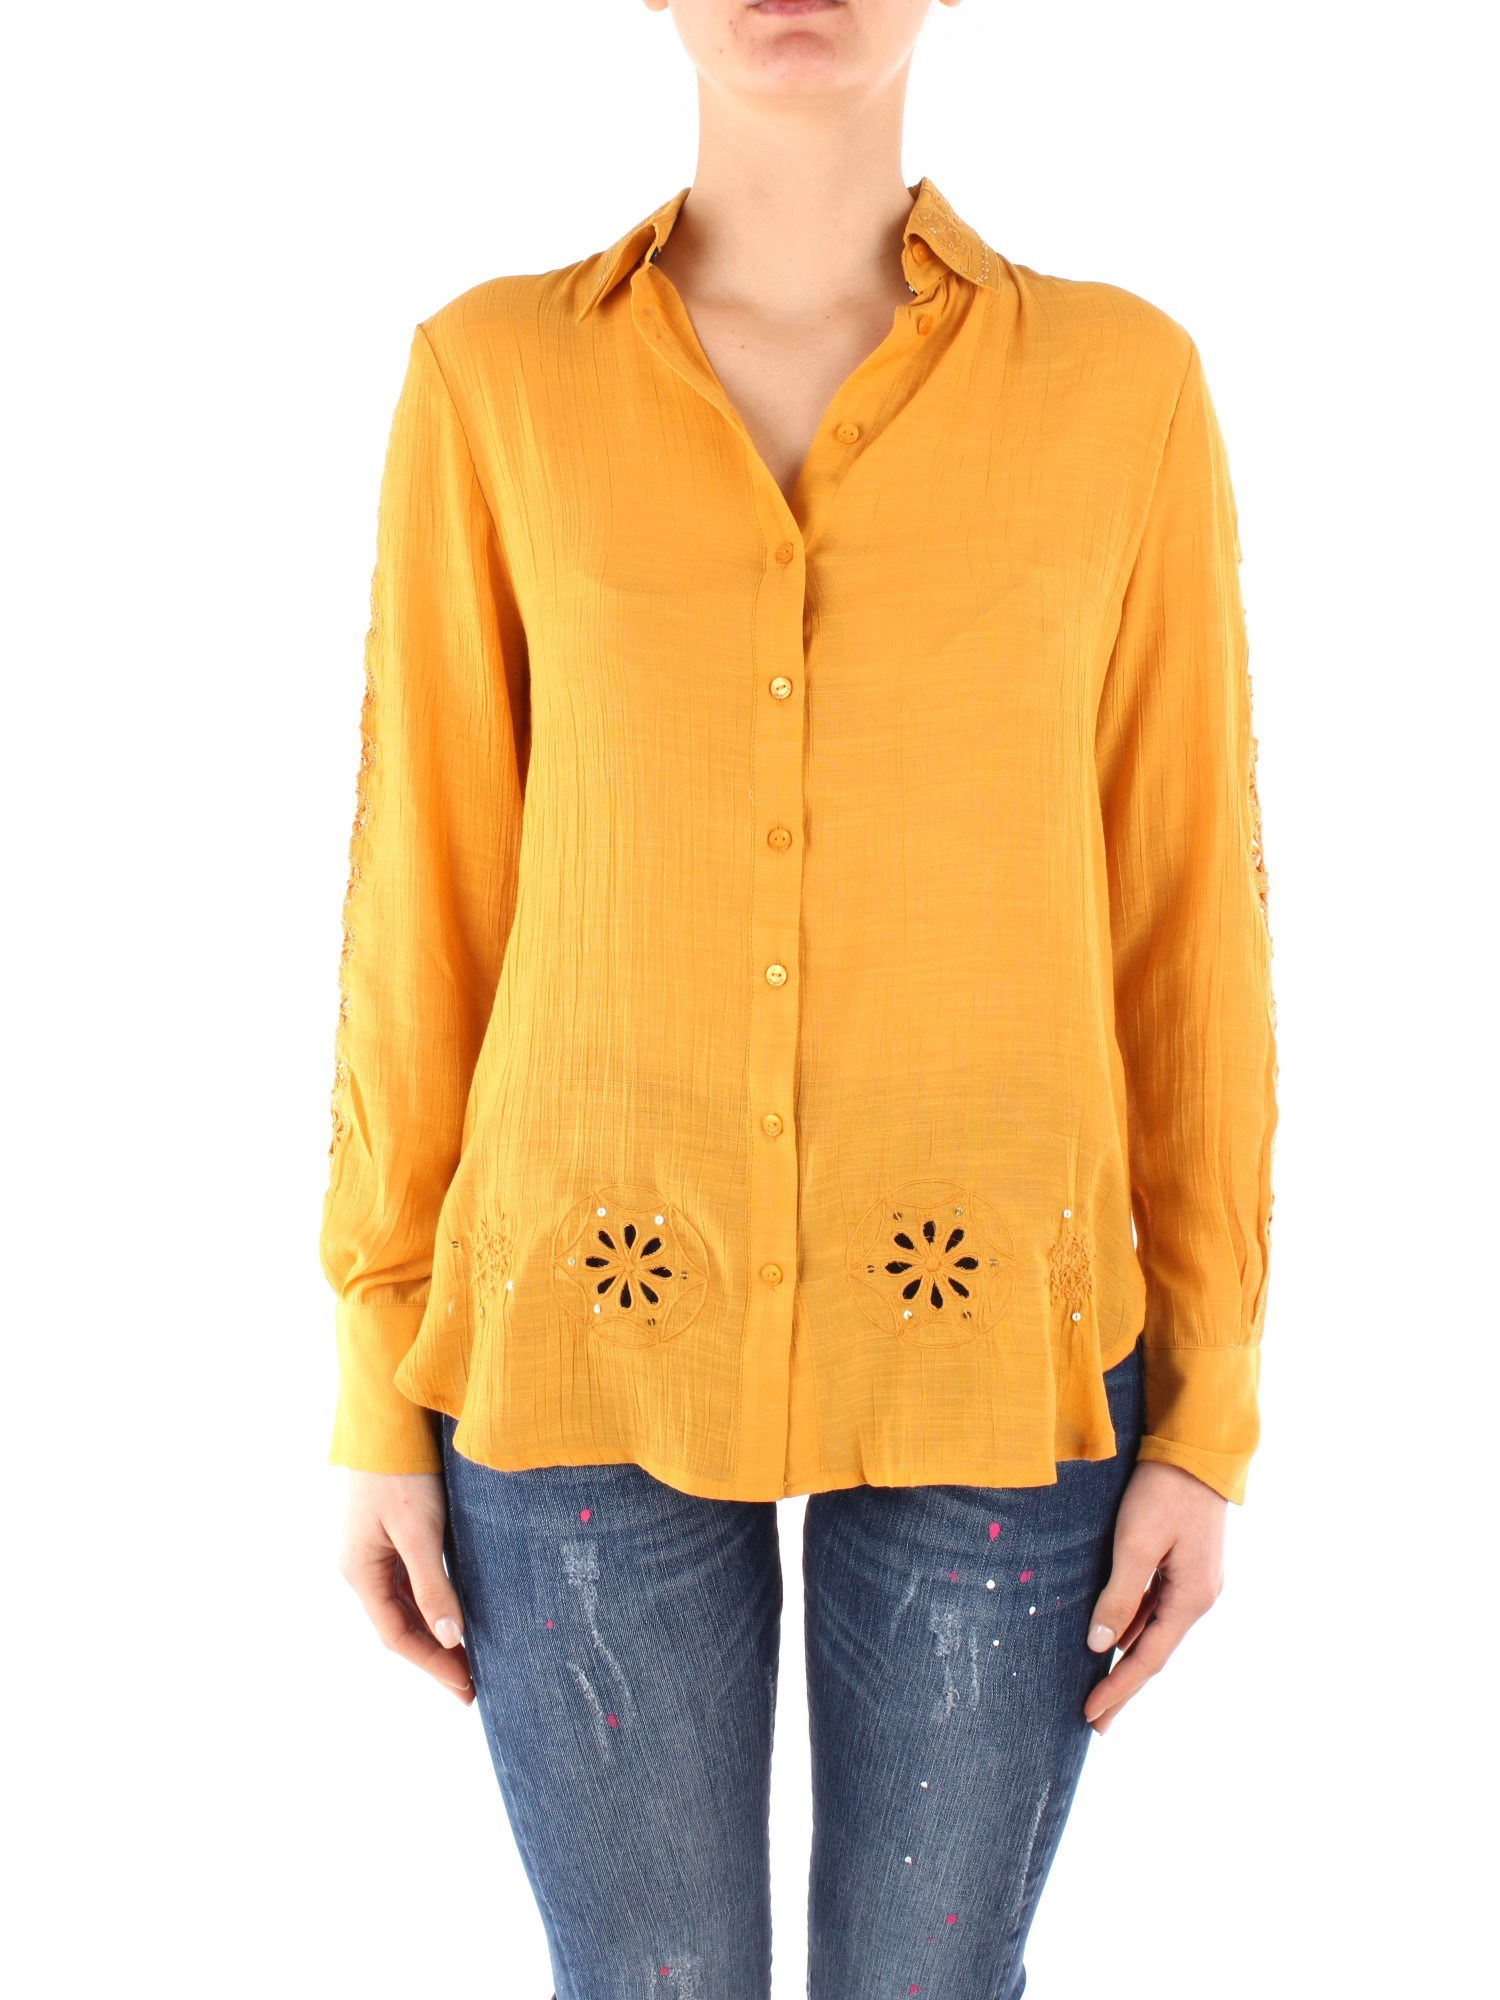 Desigual Clothing Woman Blouses YELLOW 20SWCW28